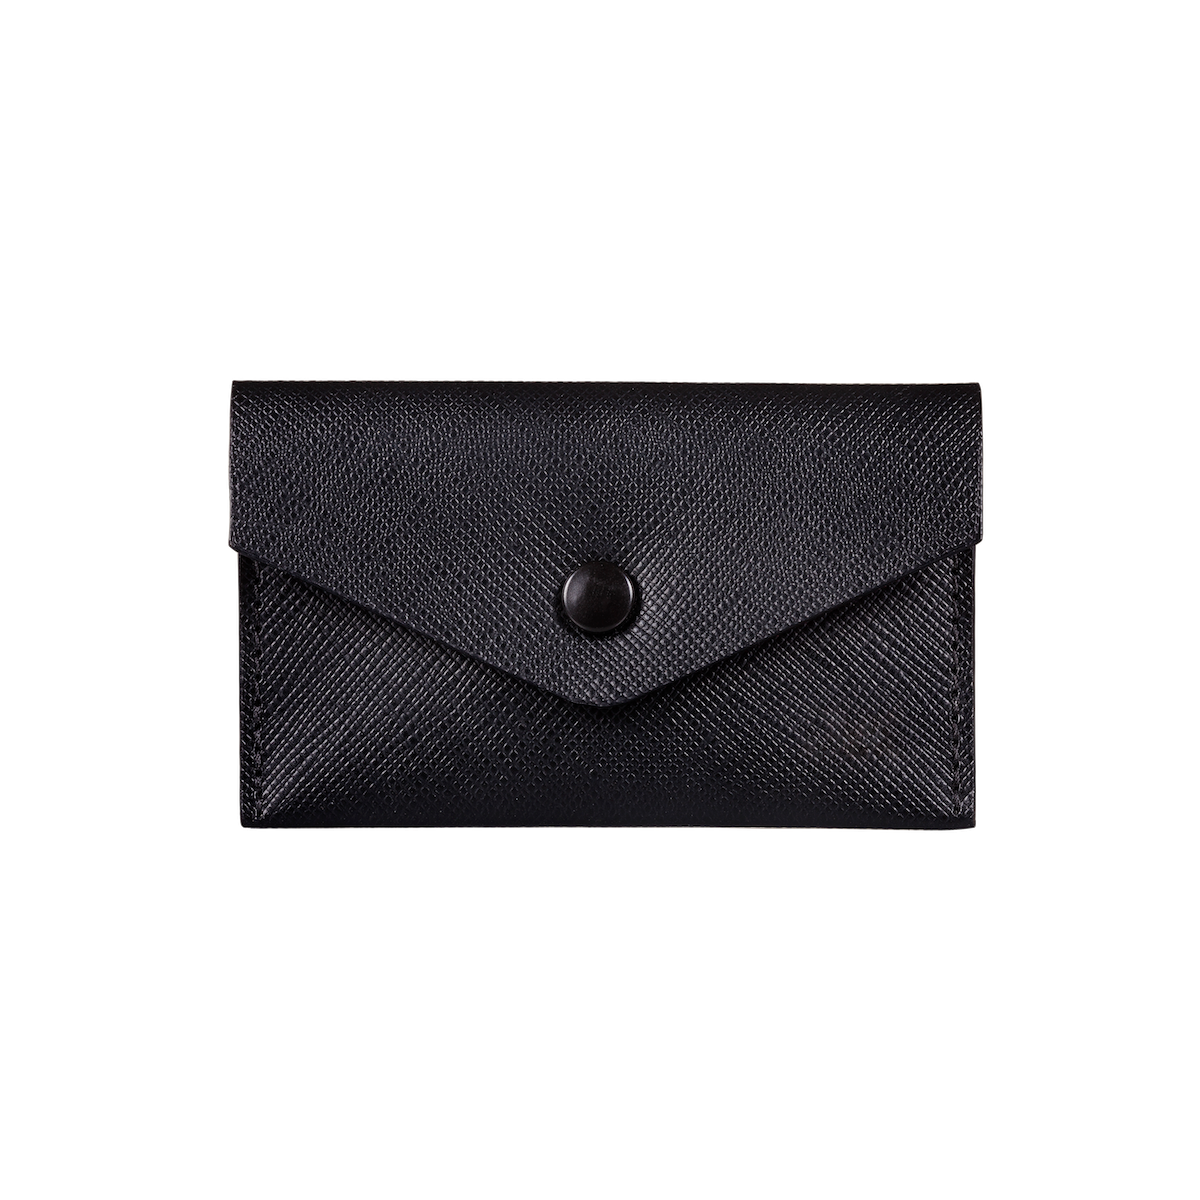 Business Card Holder, Saffiano Leather Black/Black, MAISON JMK-VONMEL Luxe Gifts